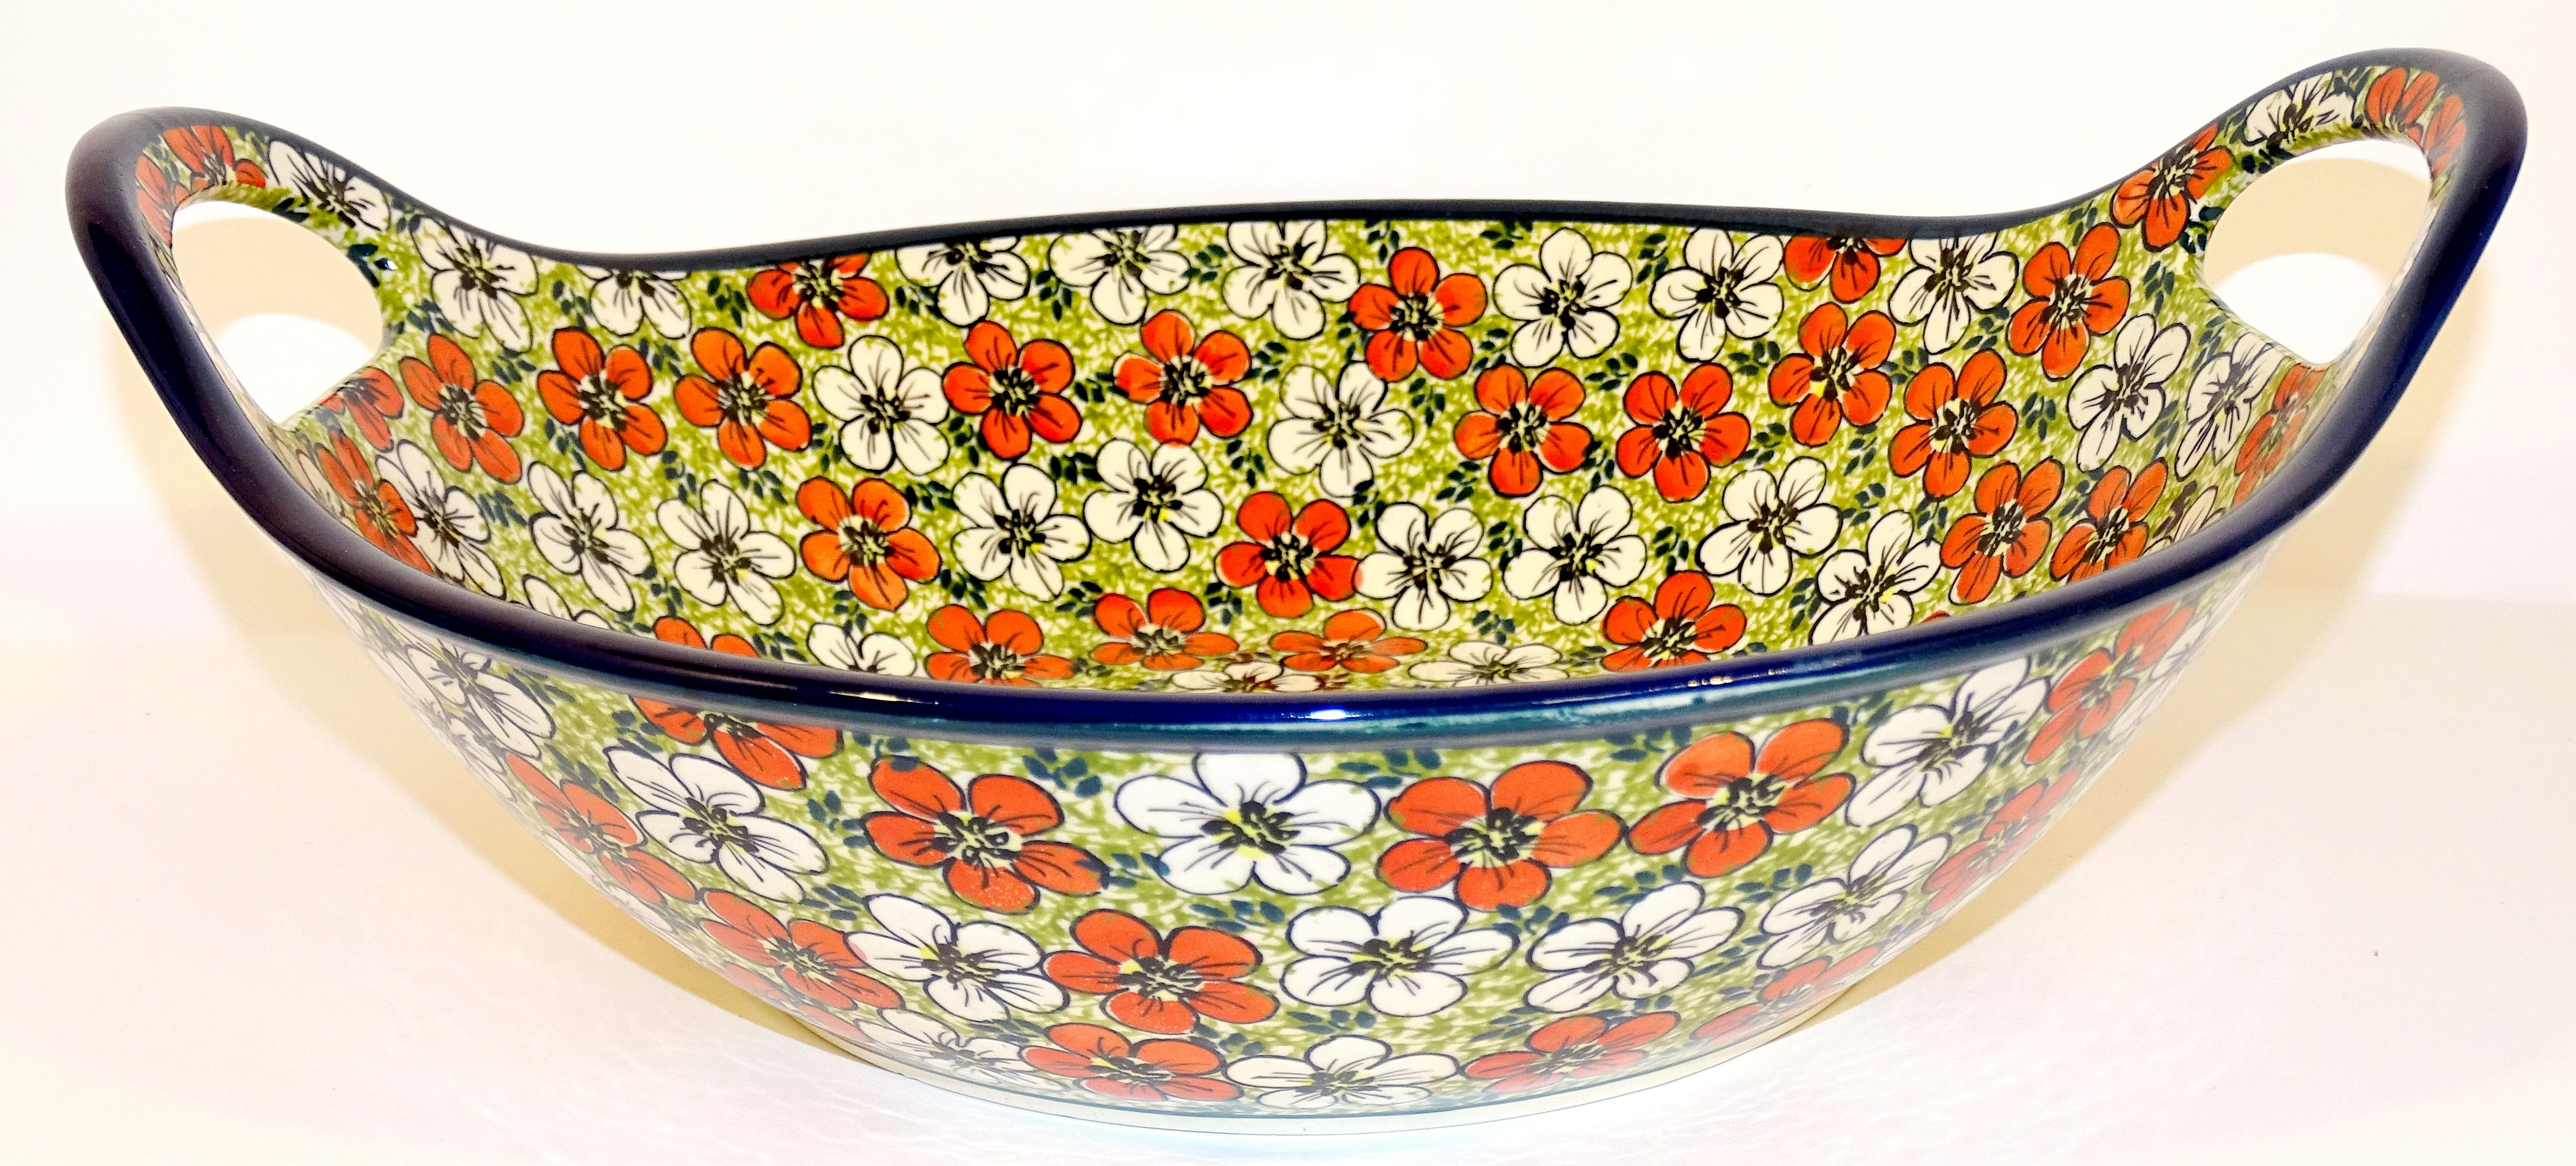 "Pottery Avenue 13"" Handled Bowl-Baker 